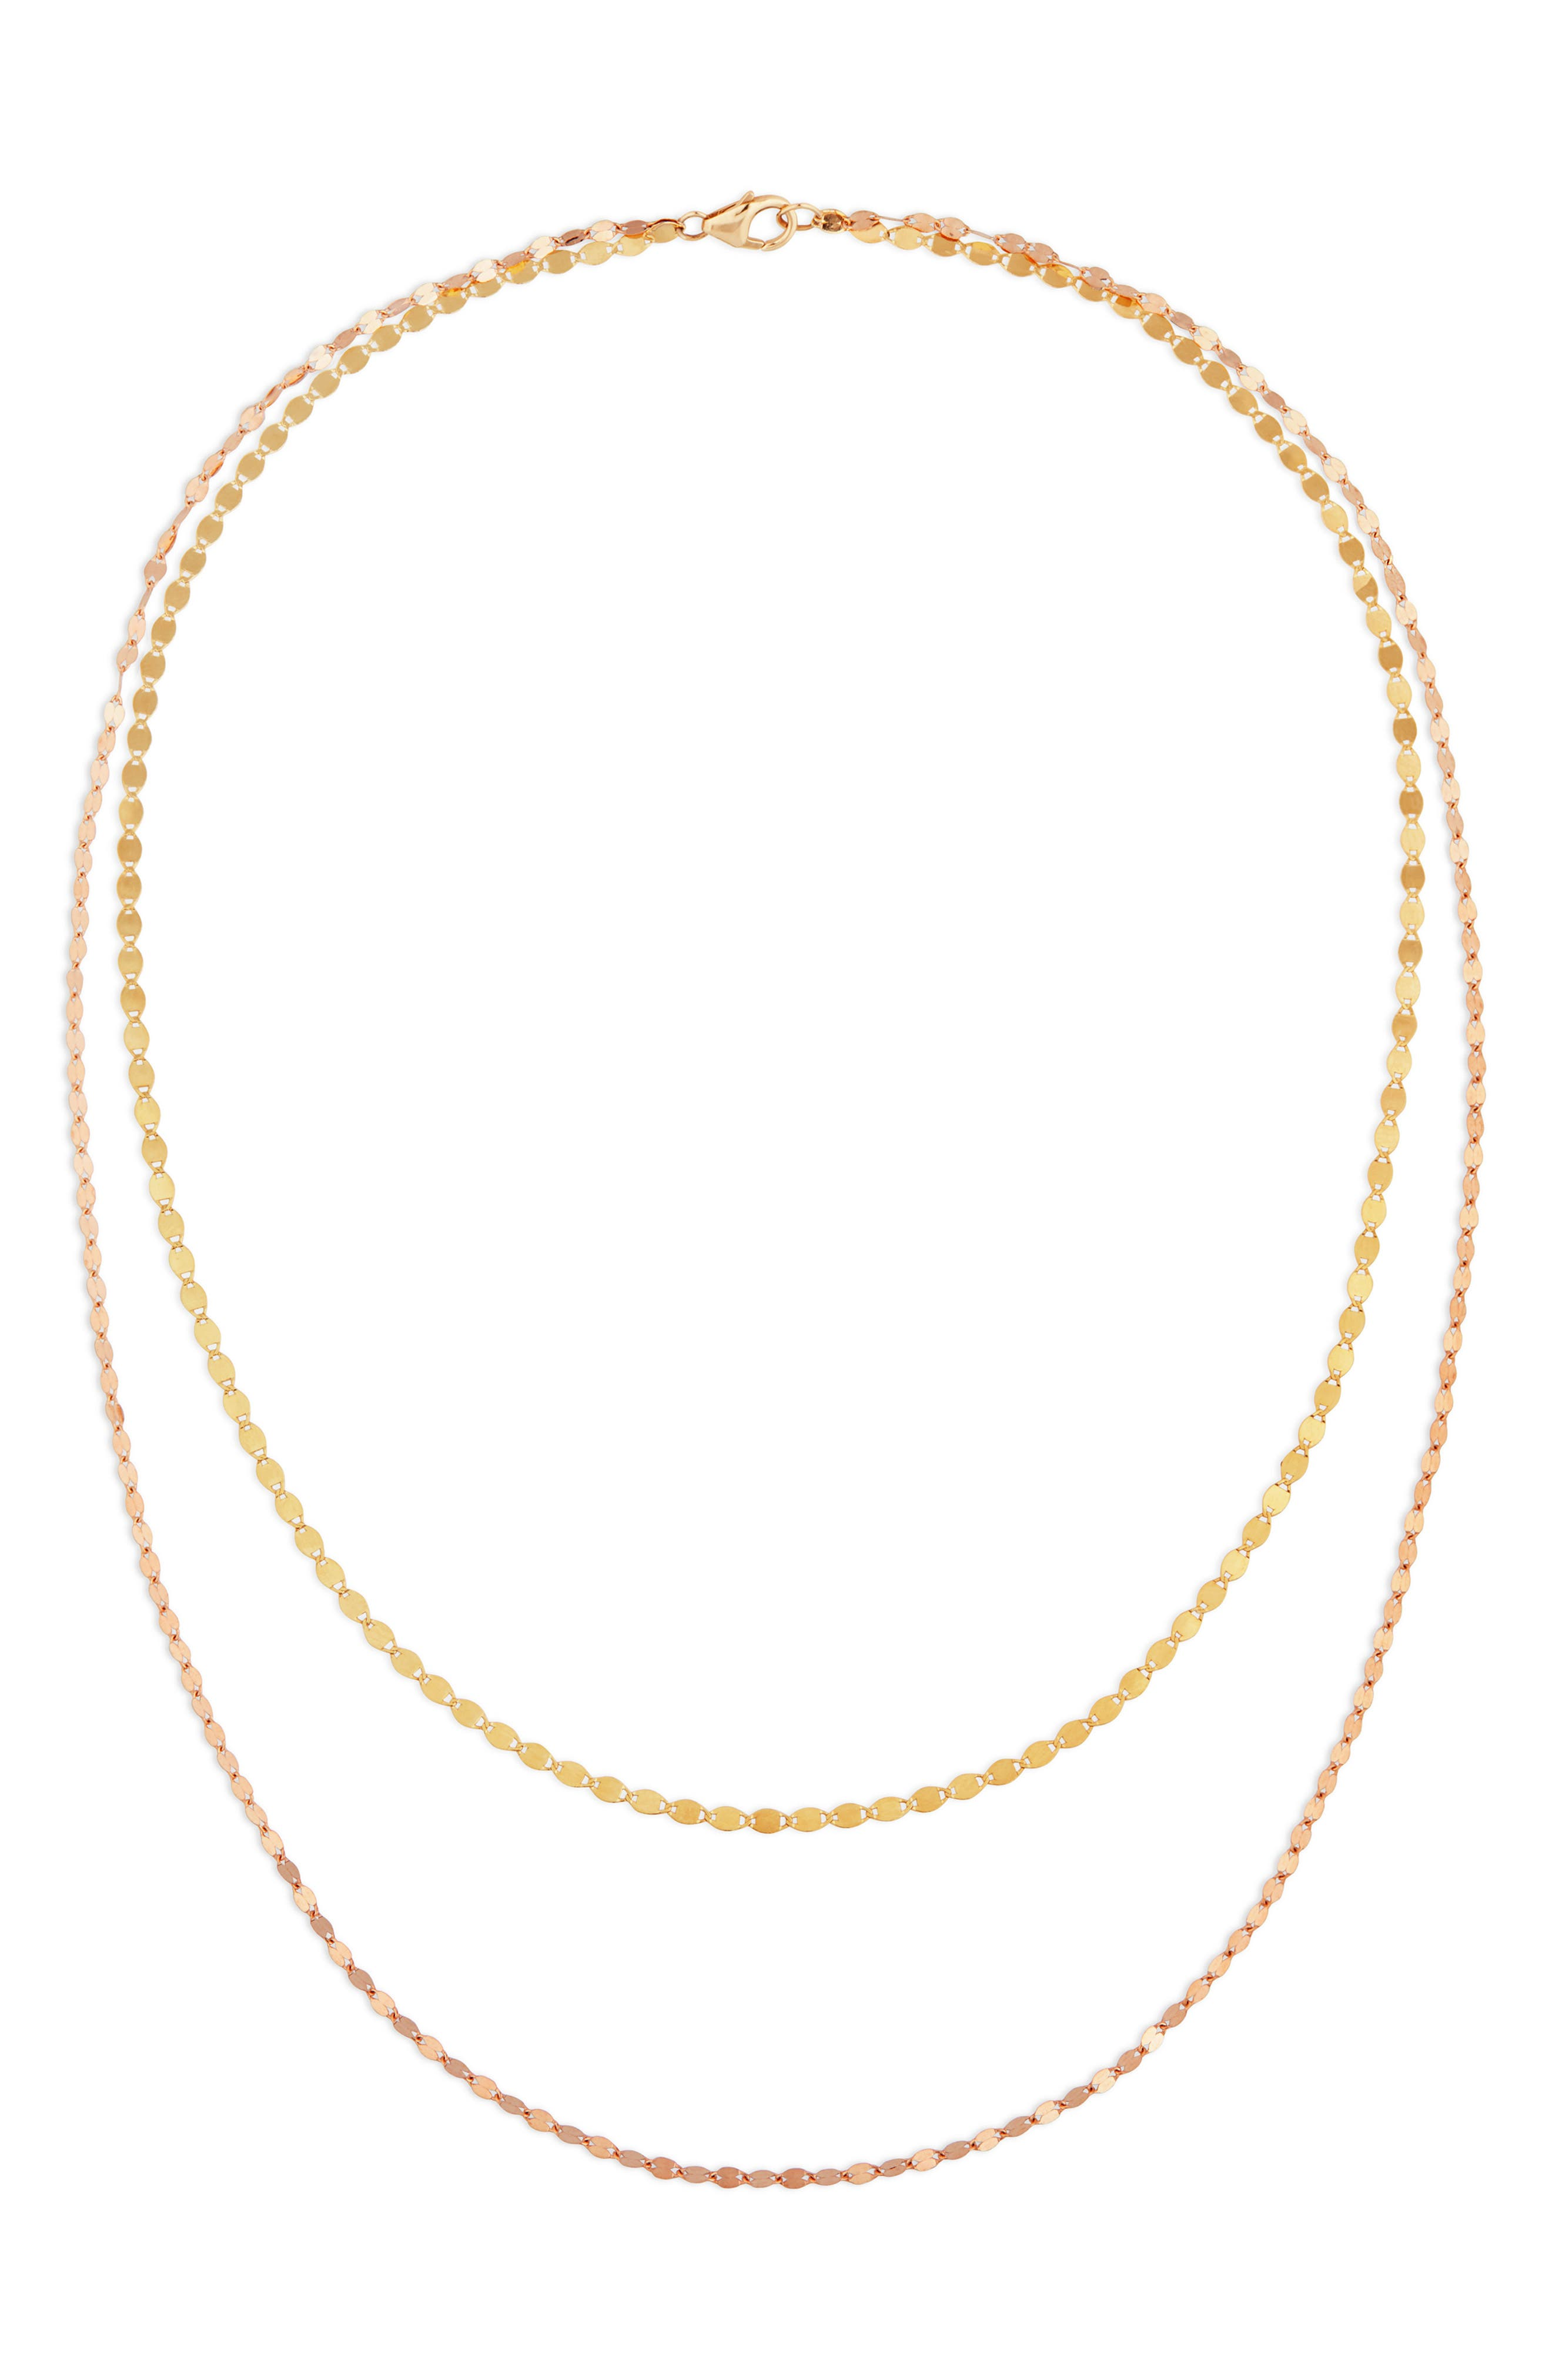 LANA Blake Double Layer Chain Necklace in Yellow Gold/ Rose Gold